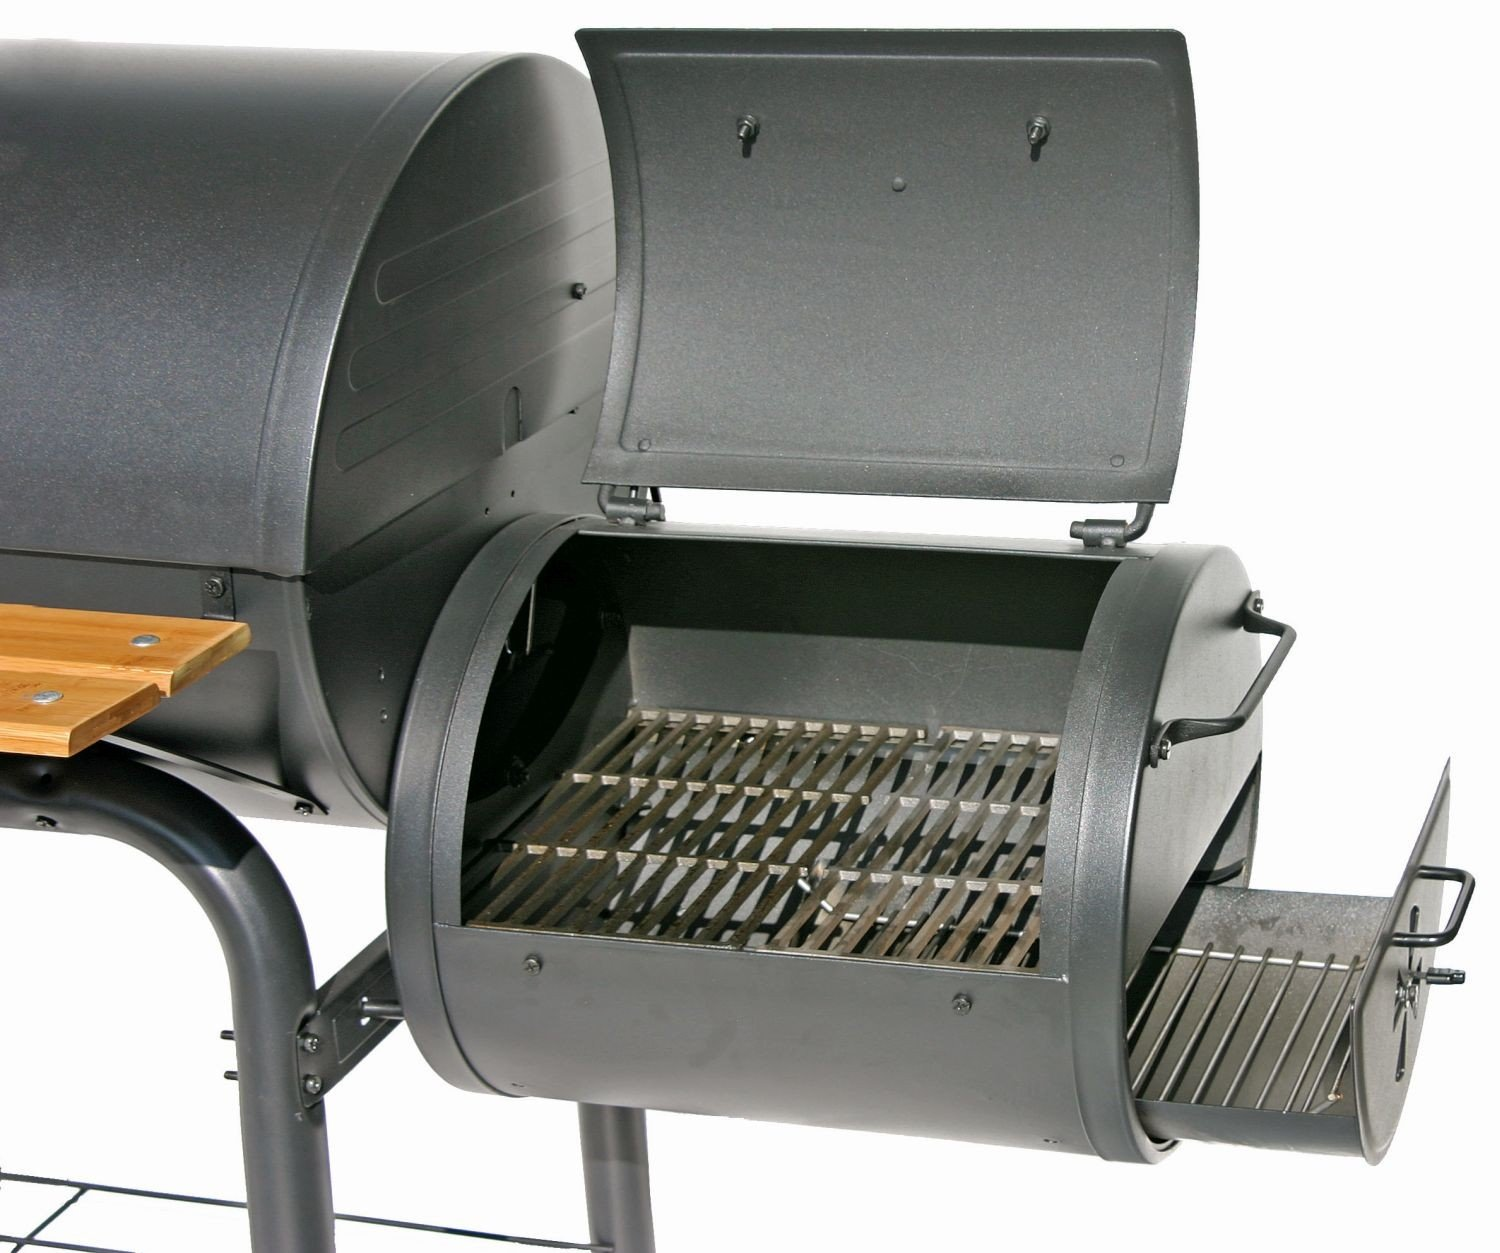 test smoker grill kleinster mobiler gasgrill. Black Bedroom Furniture Sets. Home Design Ideas